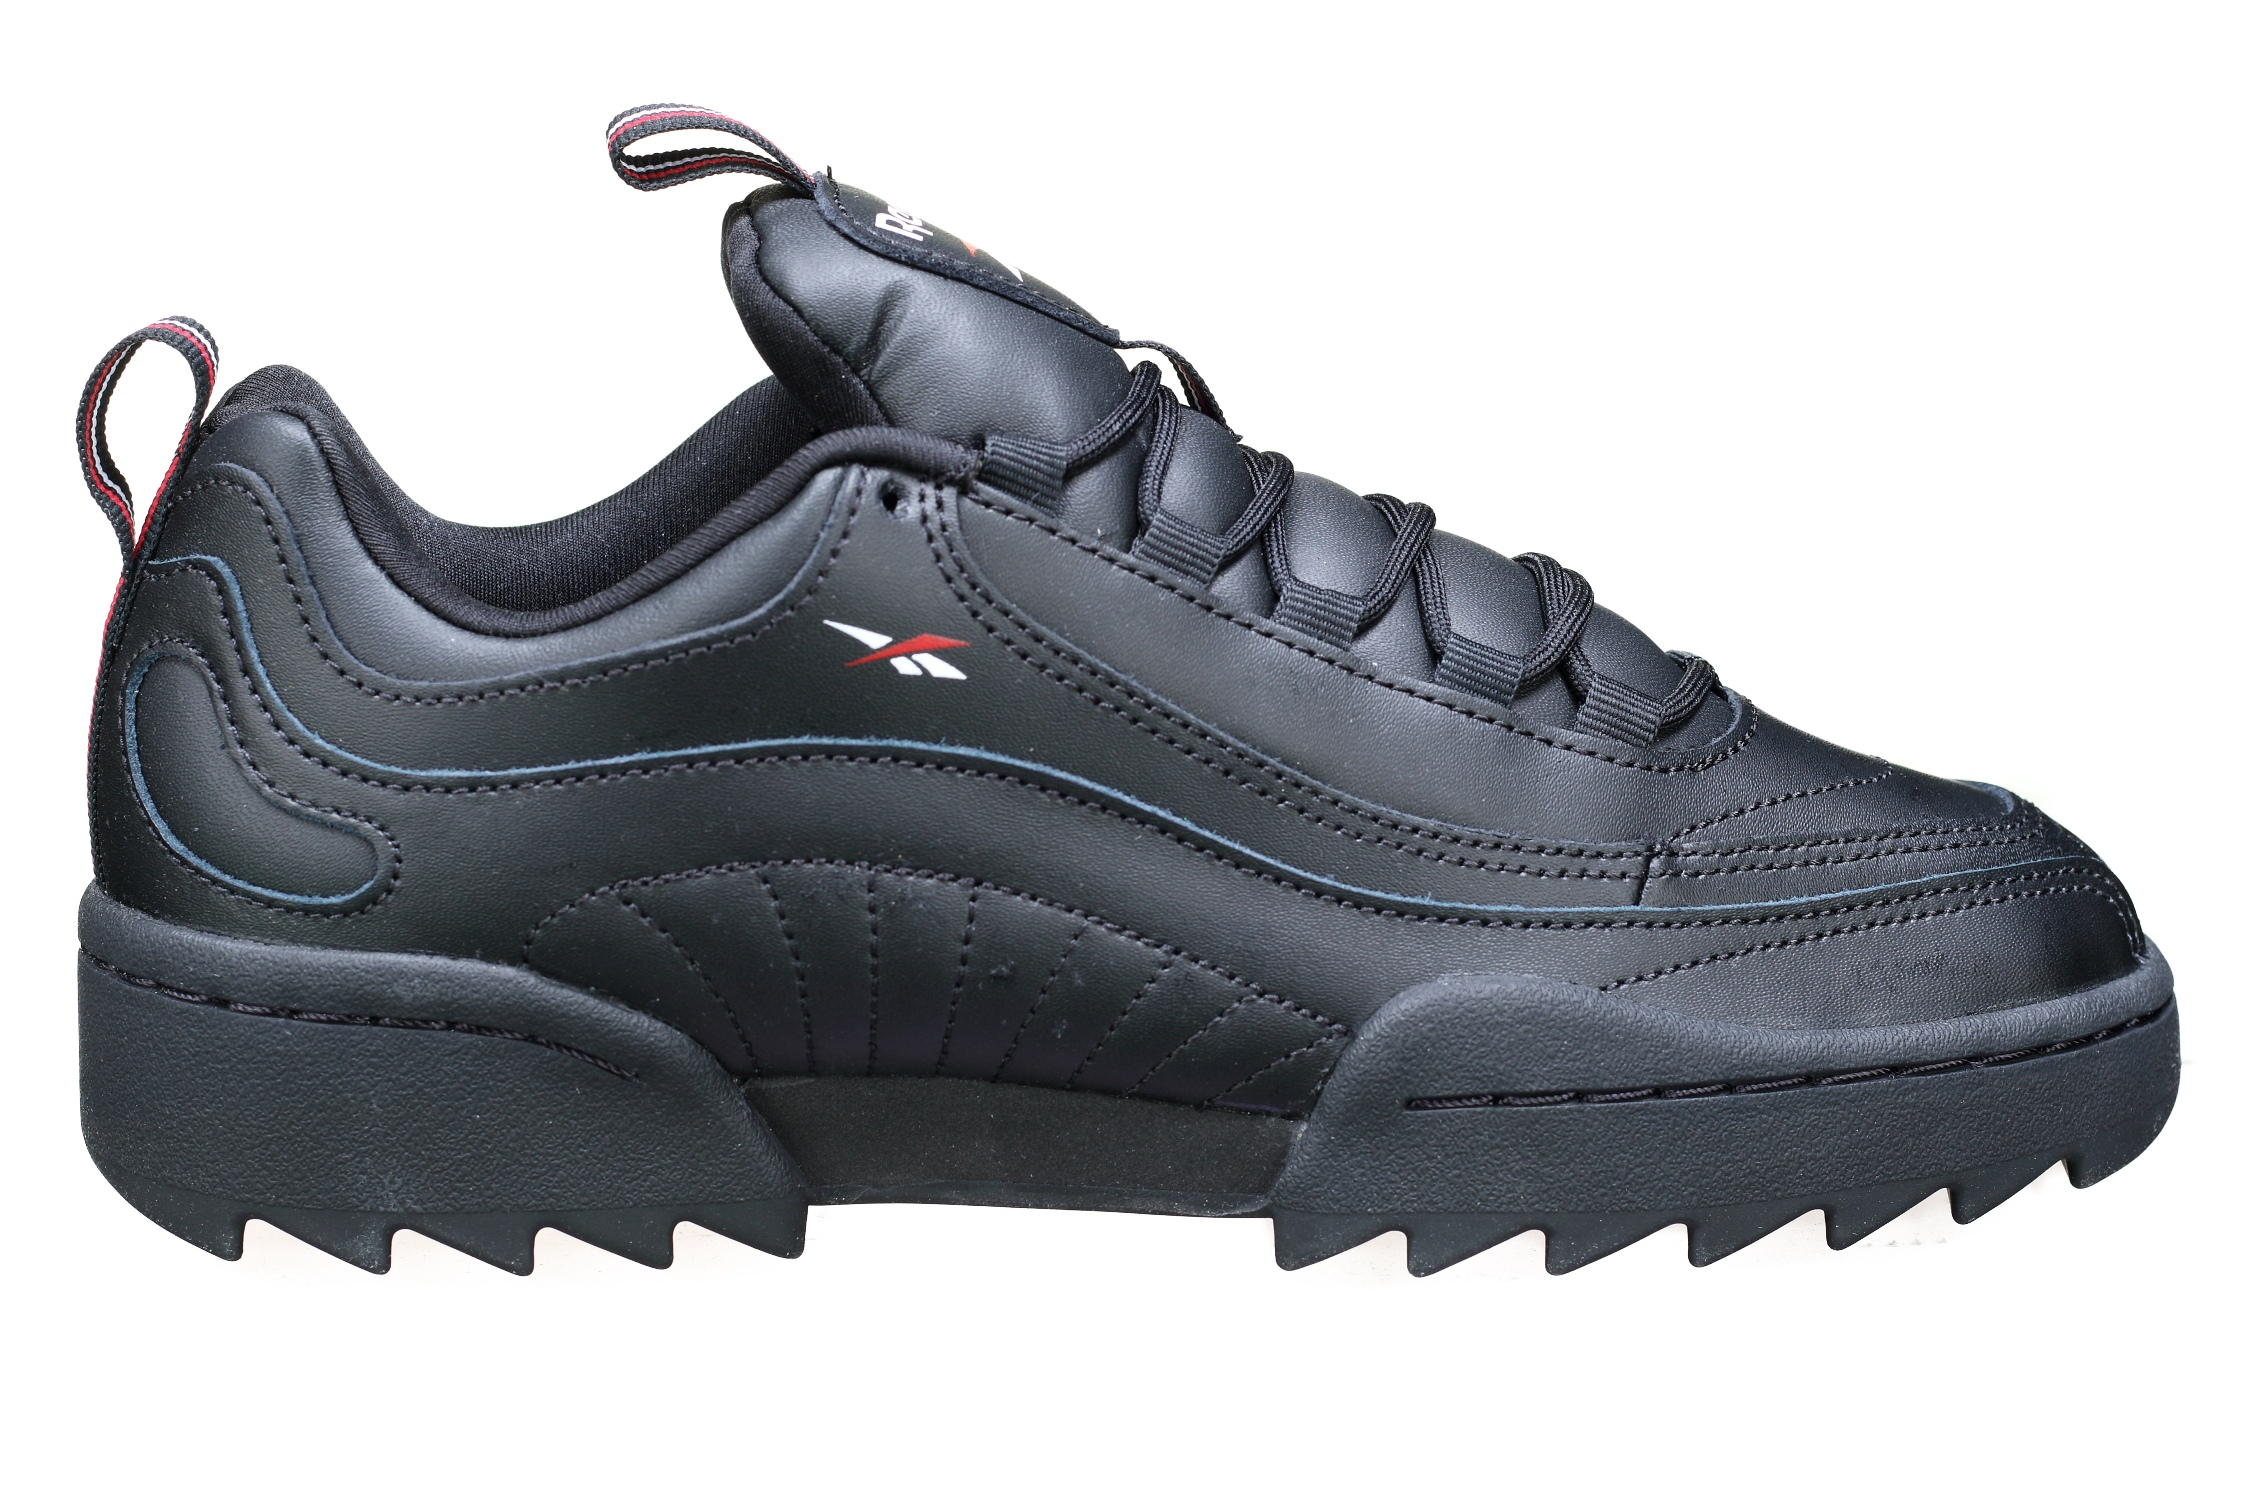 https://www.leadermode.com/162070/reebok-rivyx-ripple-dv6620-black.jpg